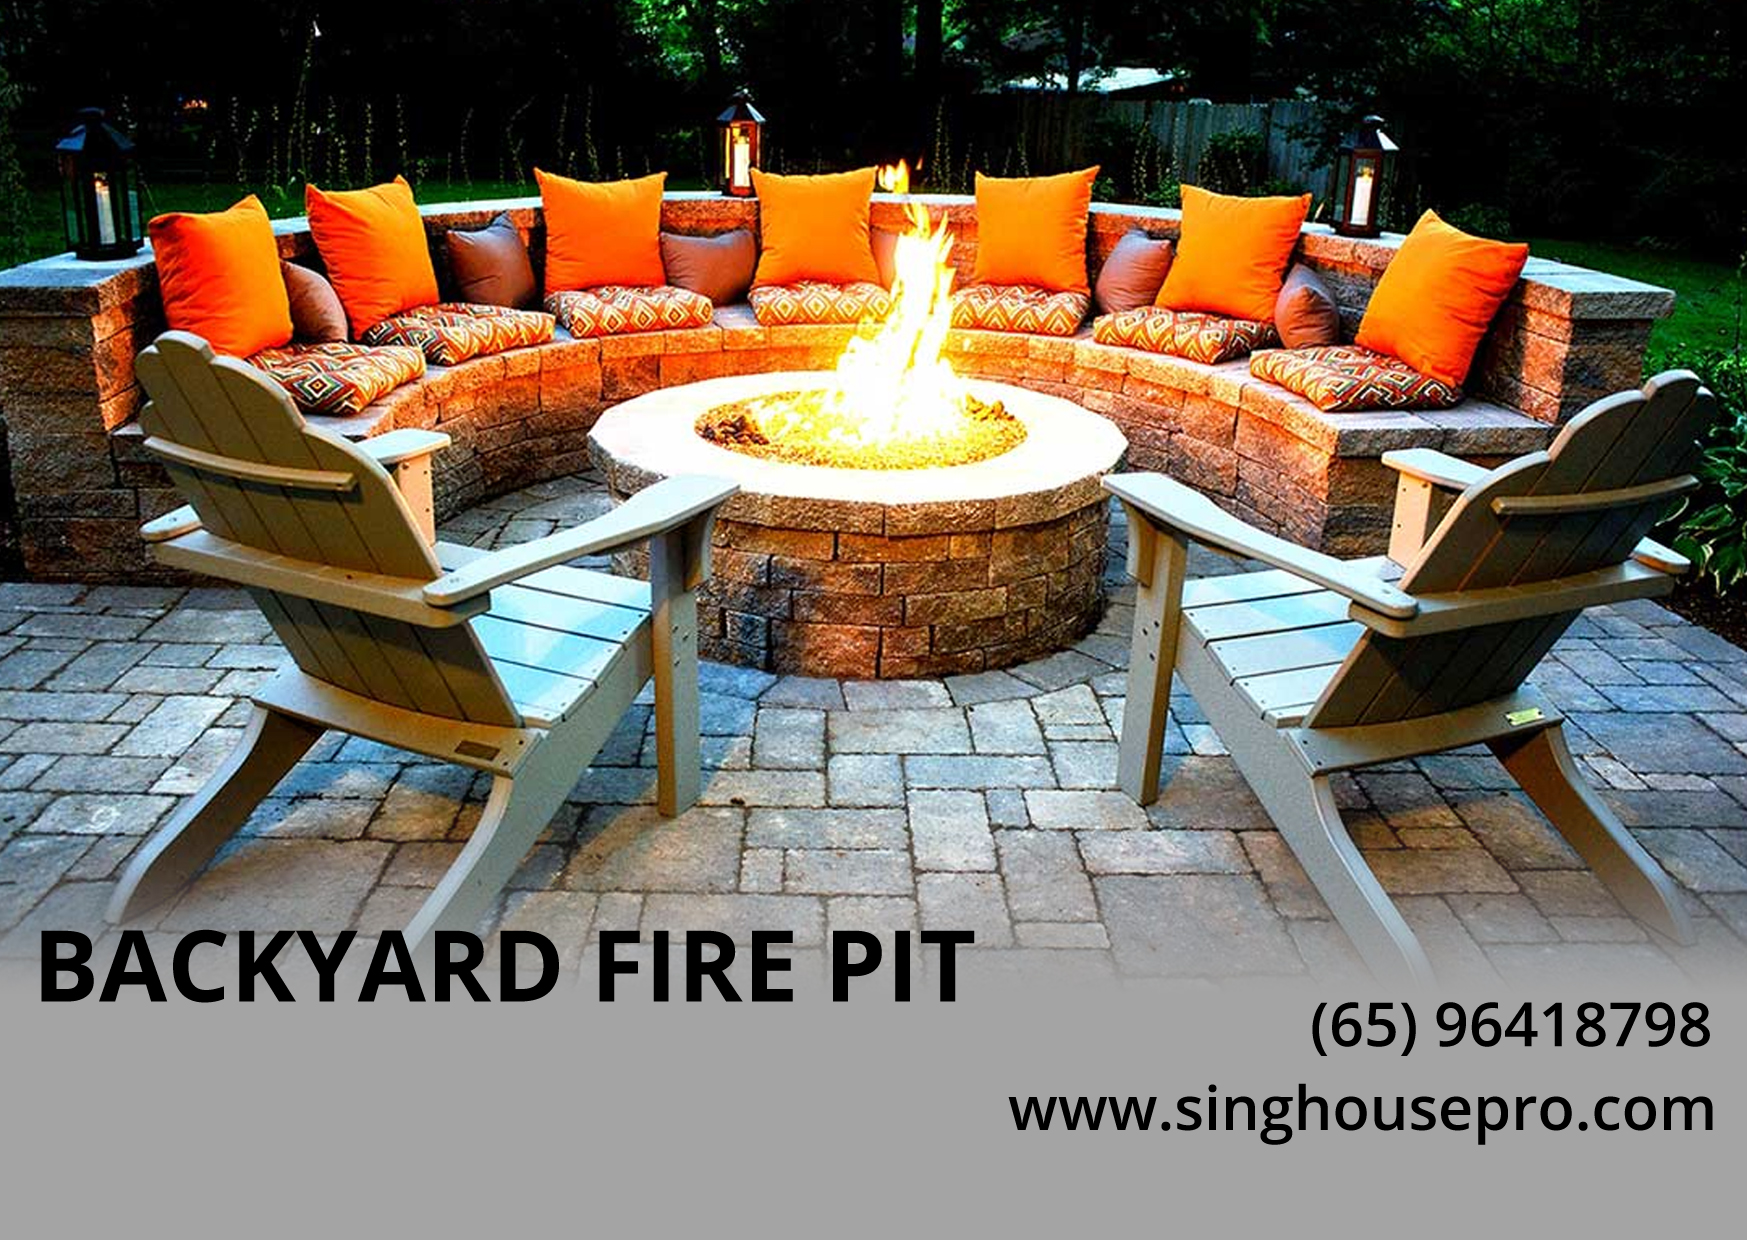 Easy Steps To Build a Backyard Fire Pit